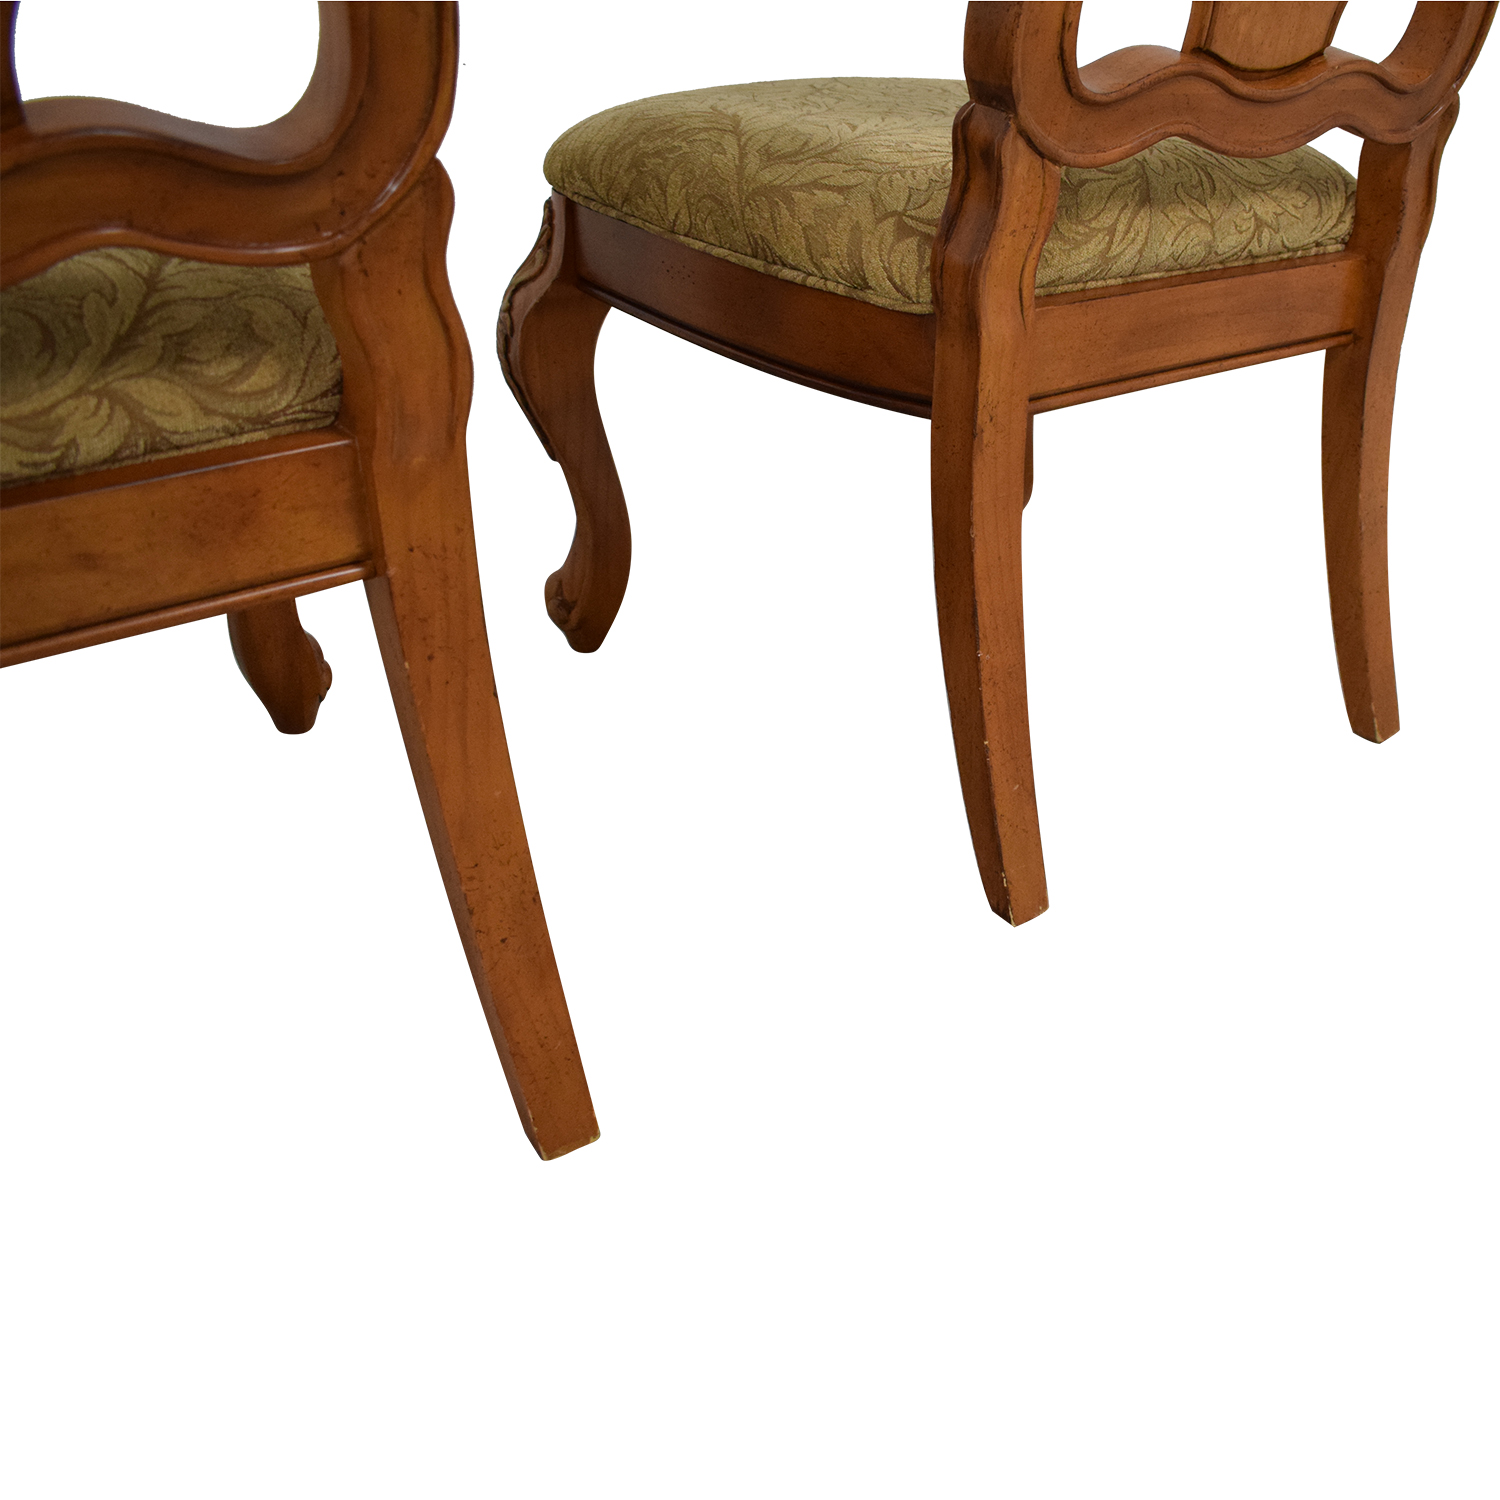 Legacy Classic Furniture Legacy Classic Dining Chairs second hand